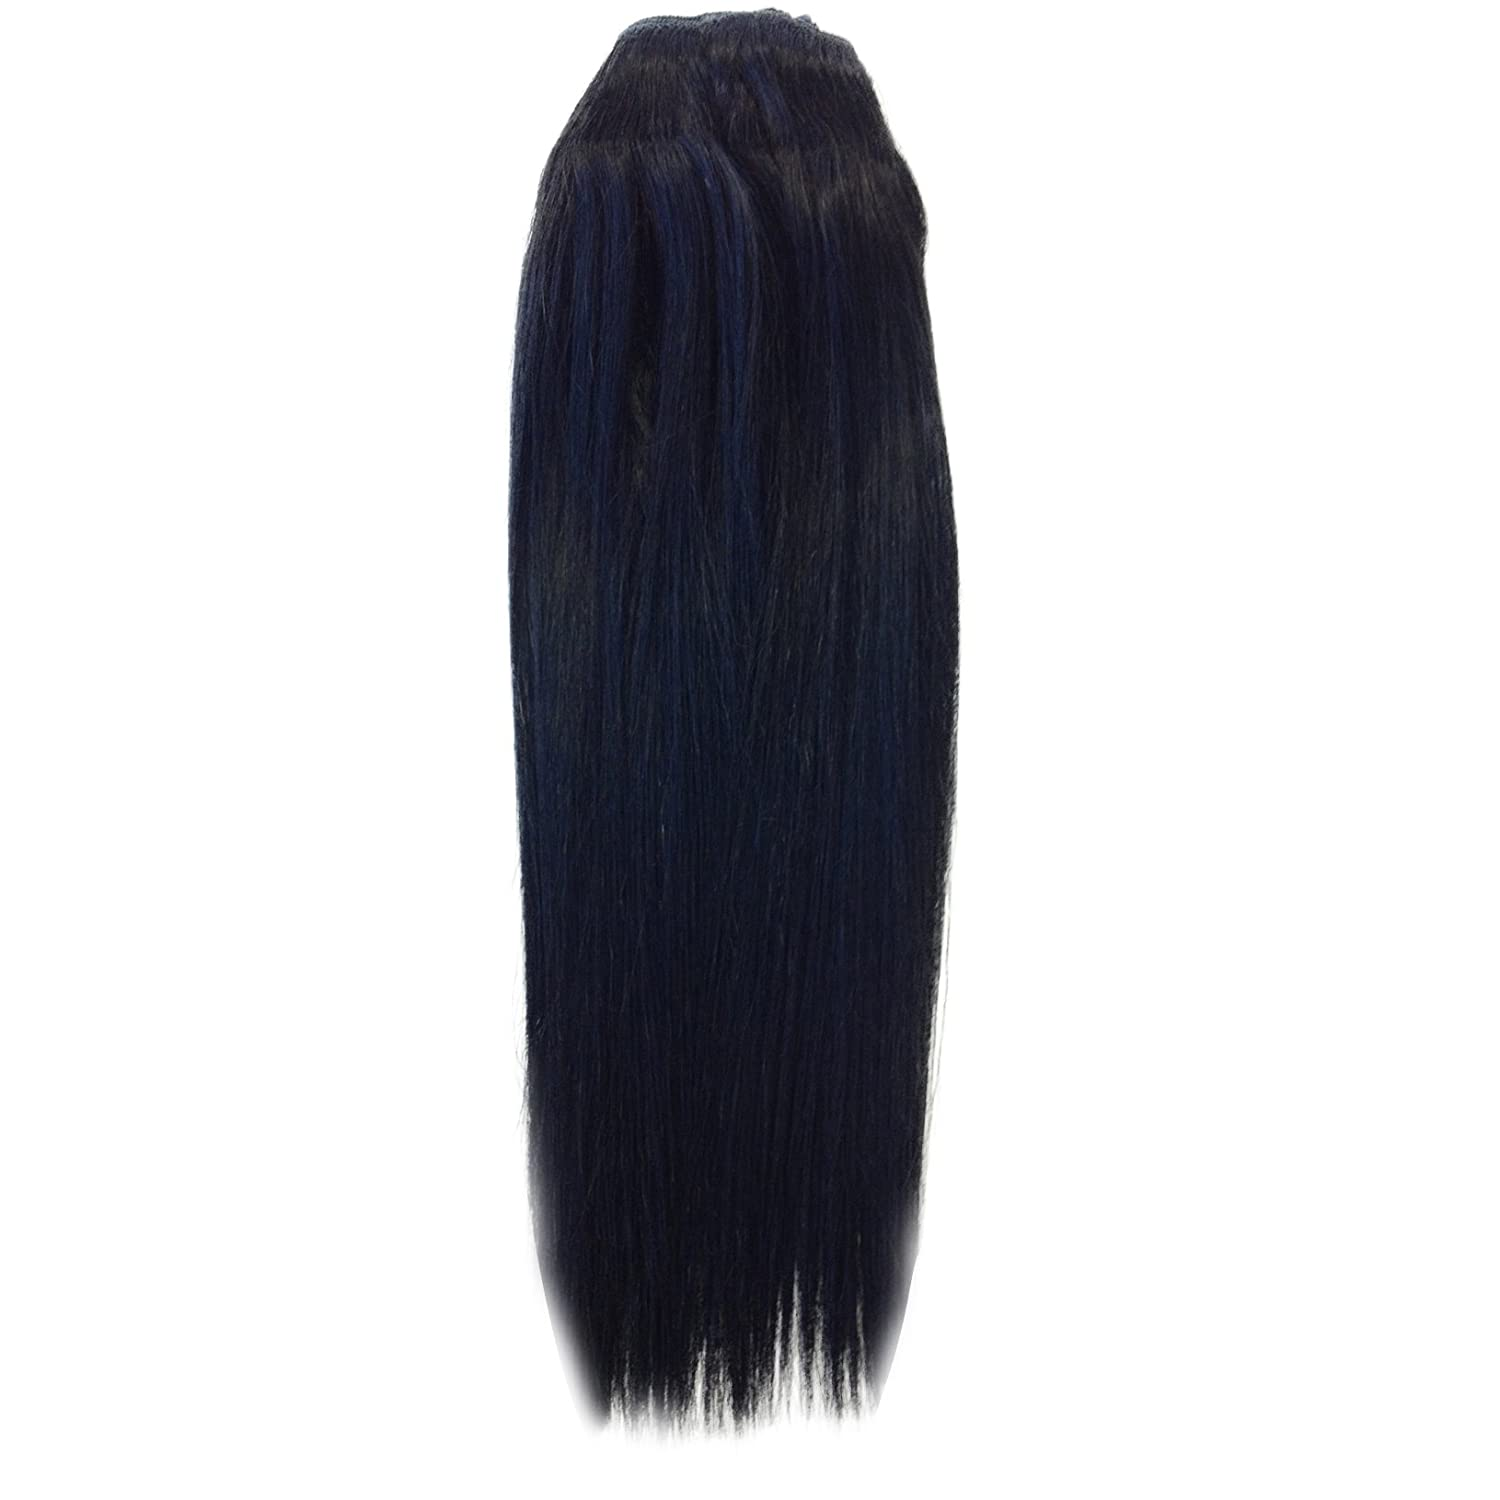 Amazon Diy Hair Extensions Jet Black 1 20 Inch Long